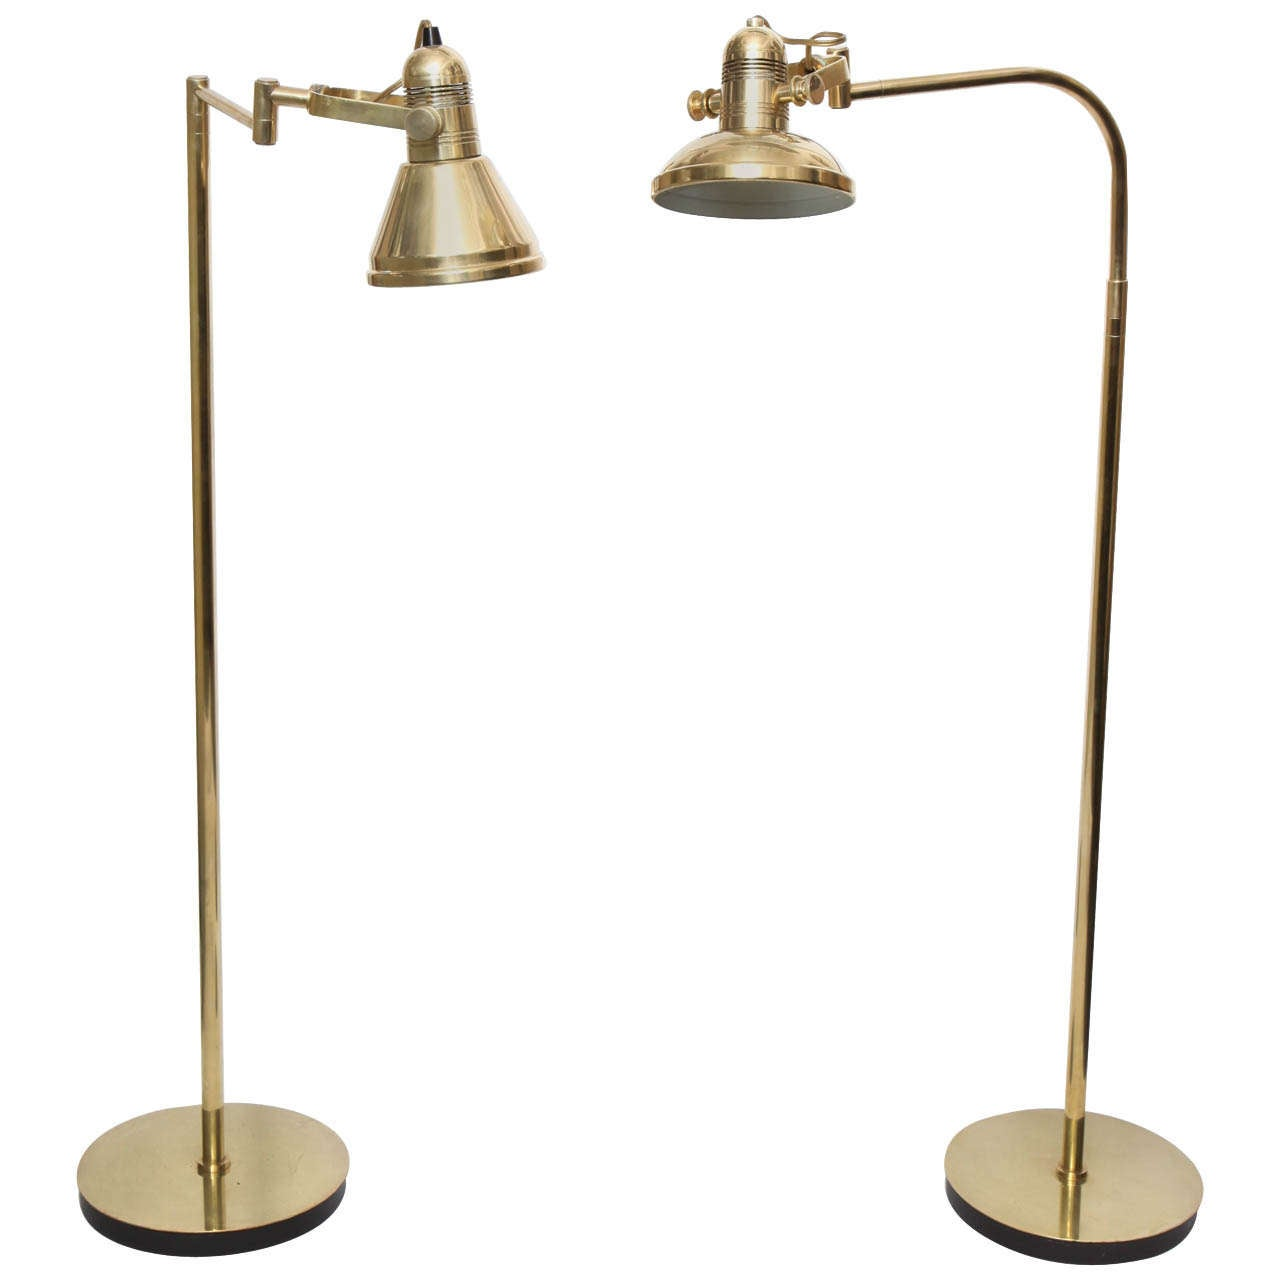 Pair of 1970s articulated brass floor reading lamps by for 1970s floor lamps